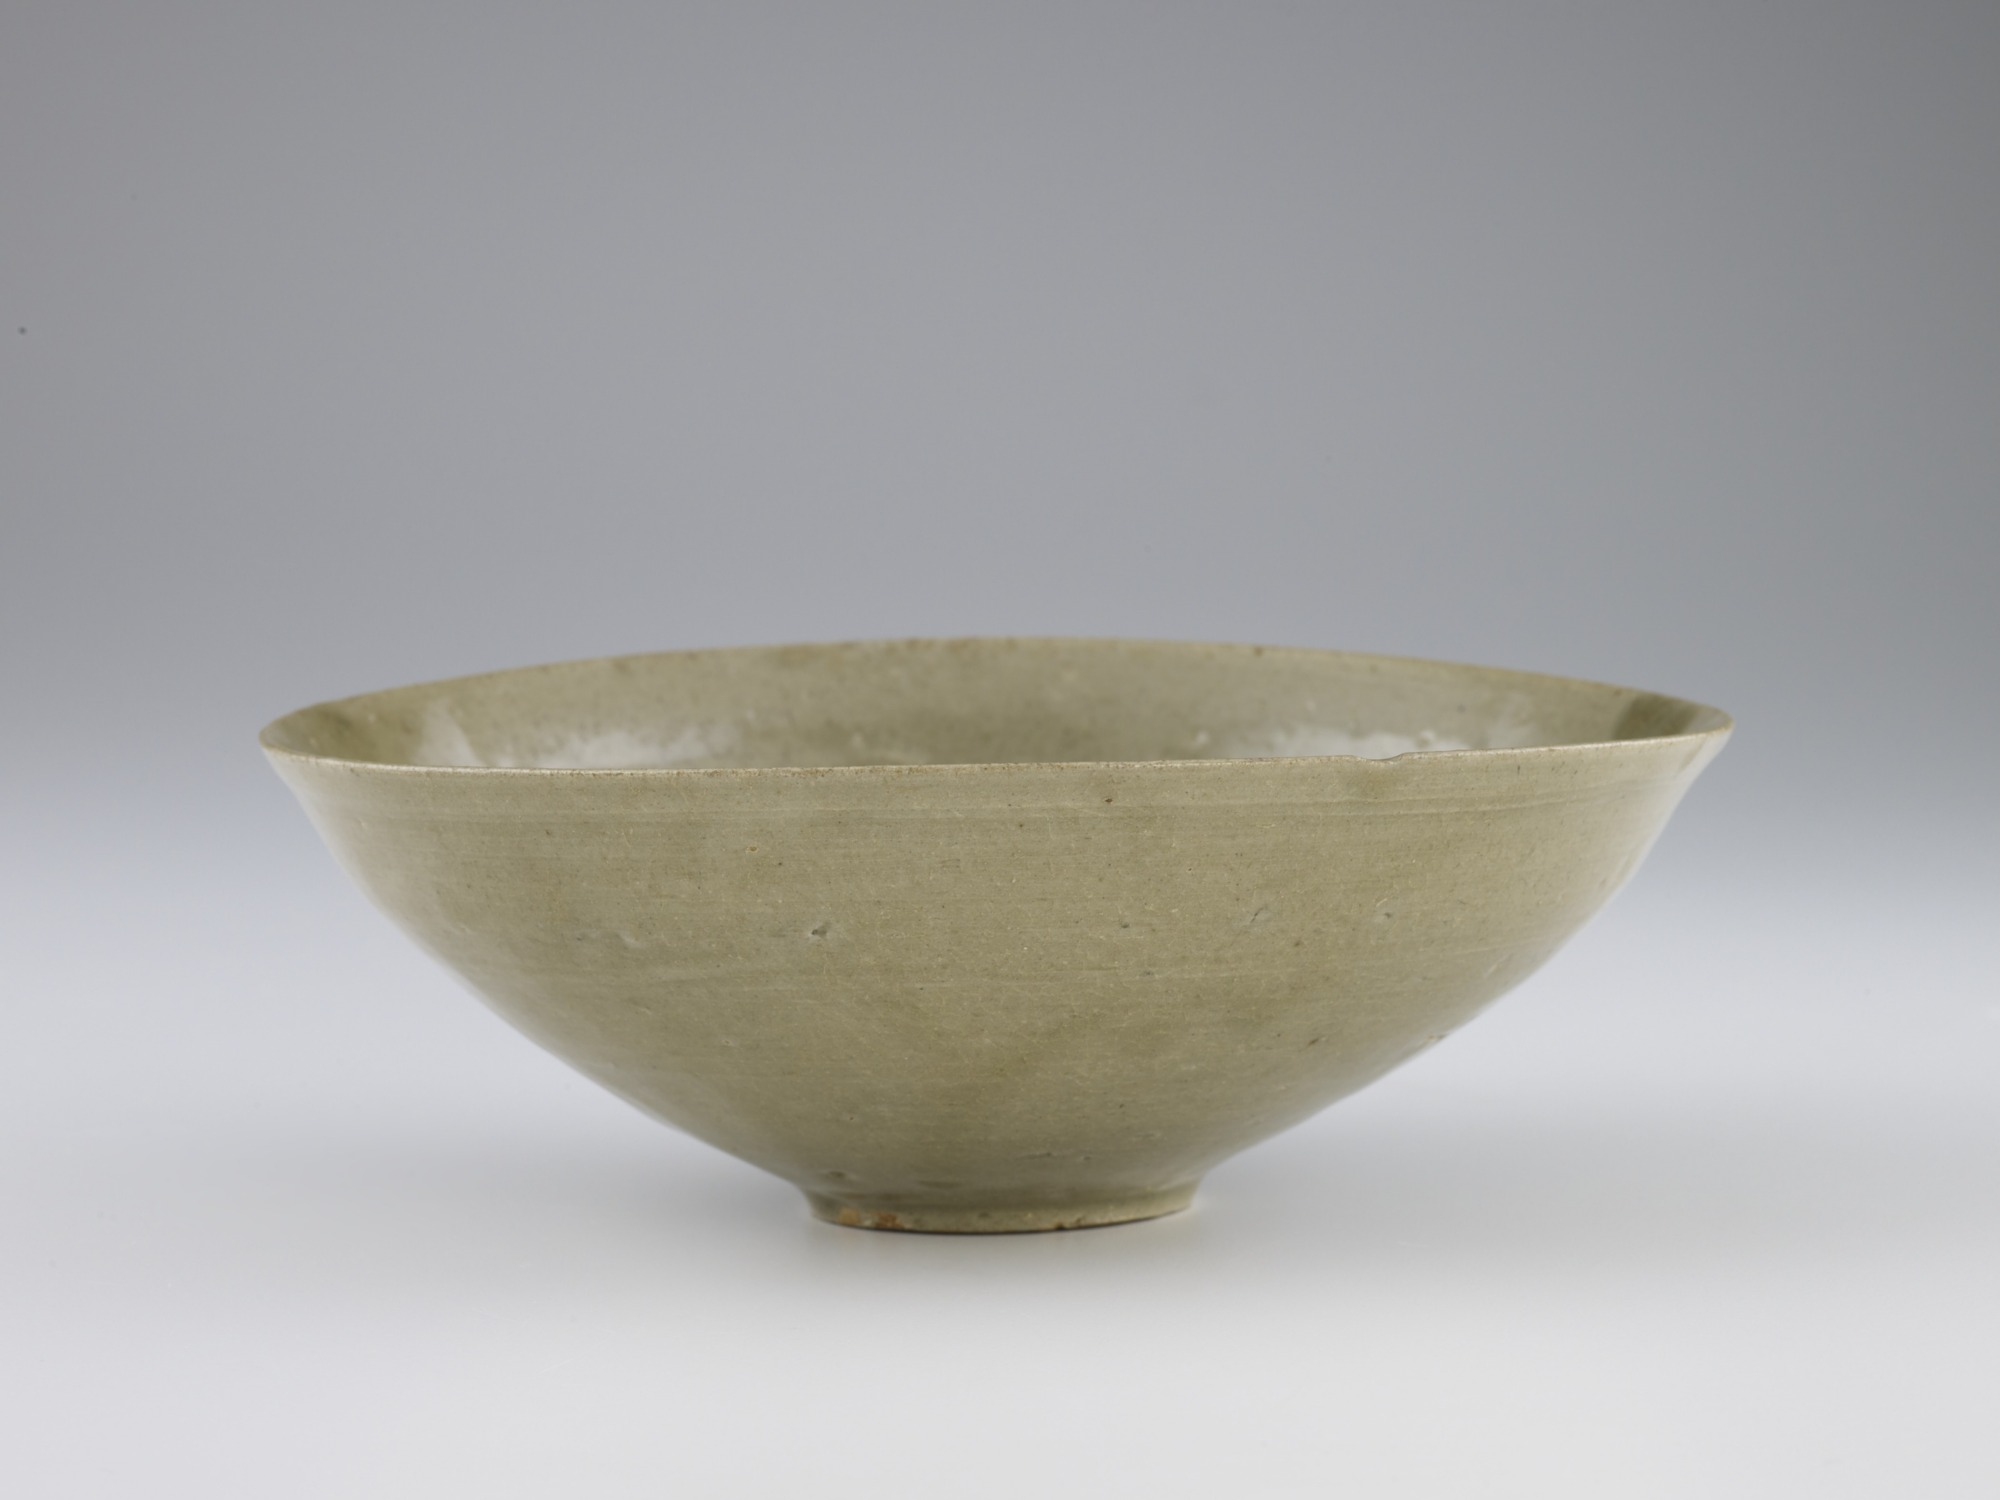 Bowl with incised floral decor, profile